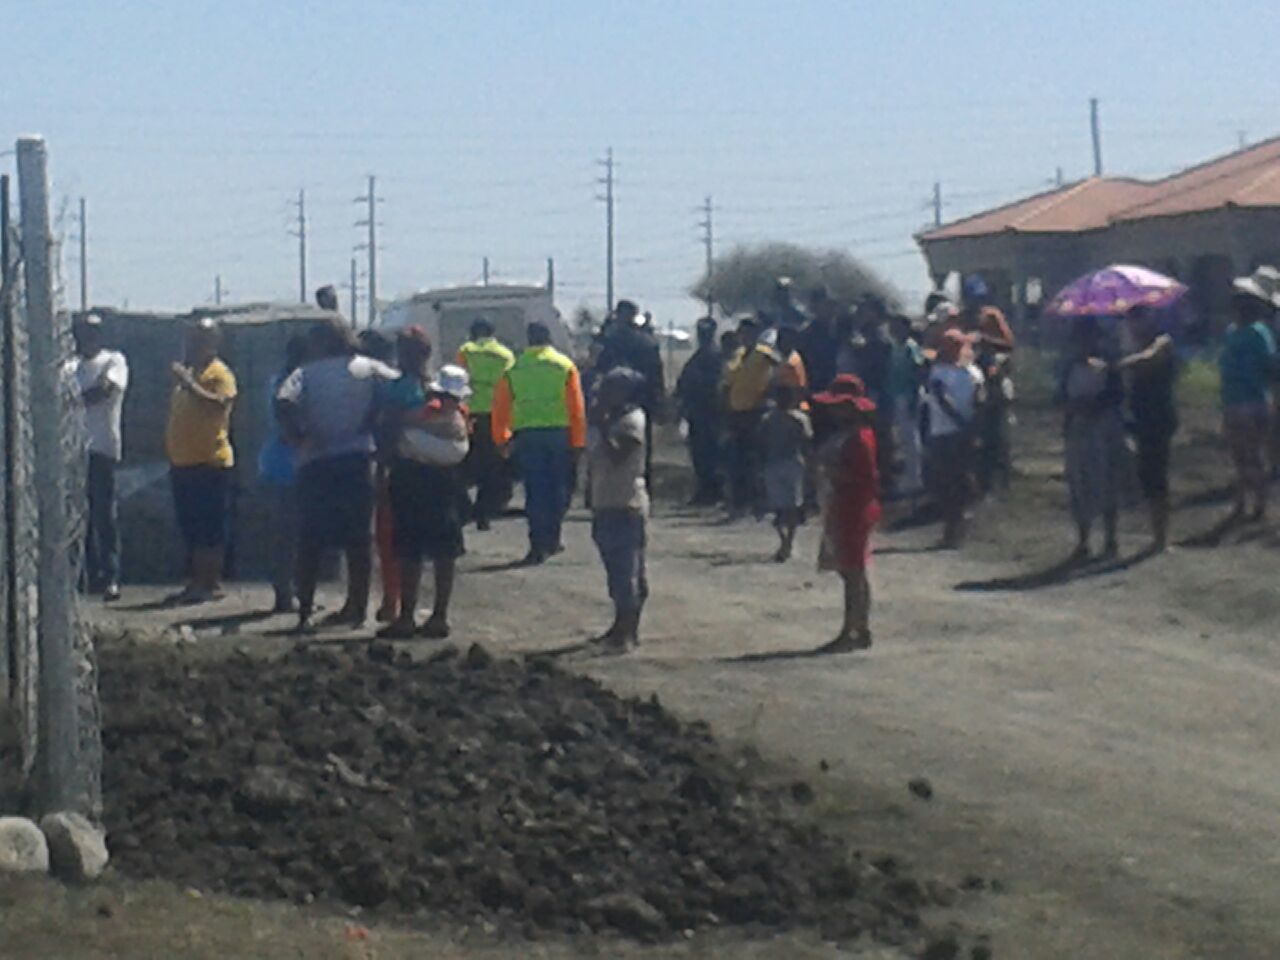 Mfidikoe residents forcefully removed by Royal Bafokeng Authority